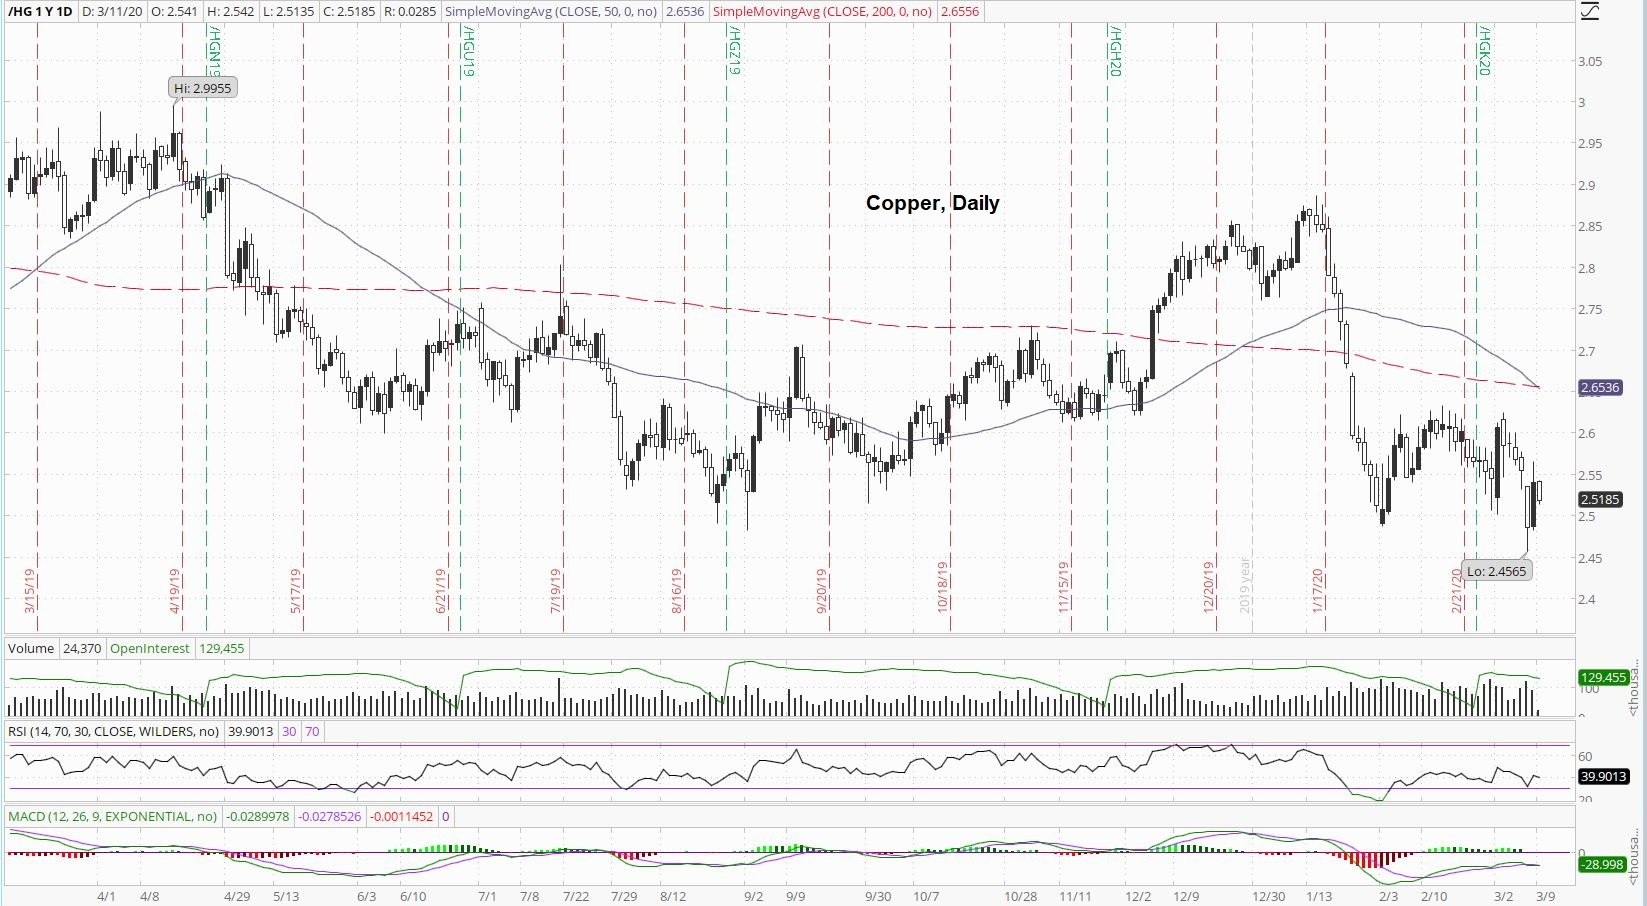 Copper Daily Index